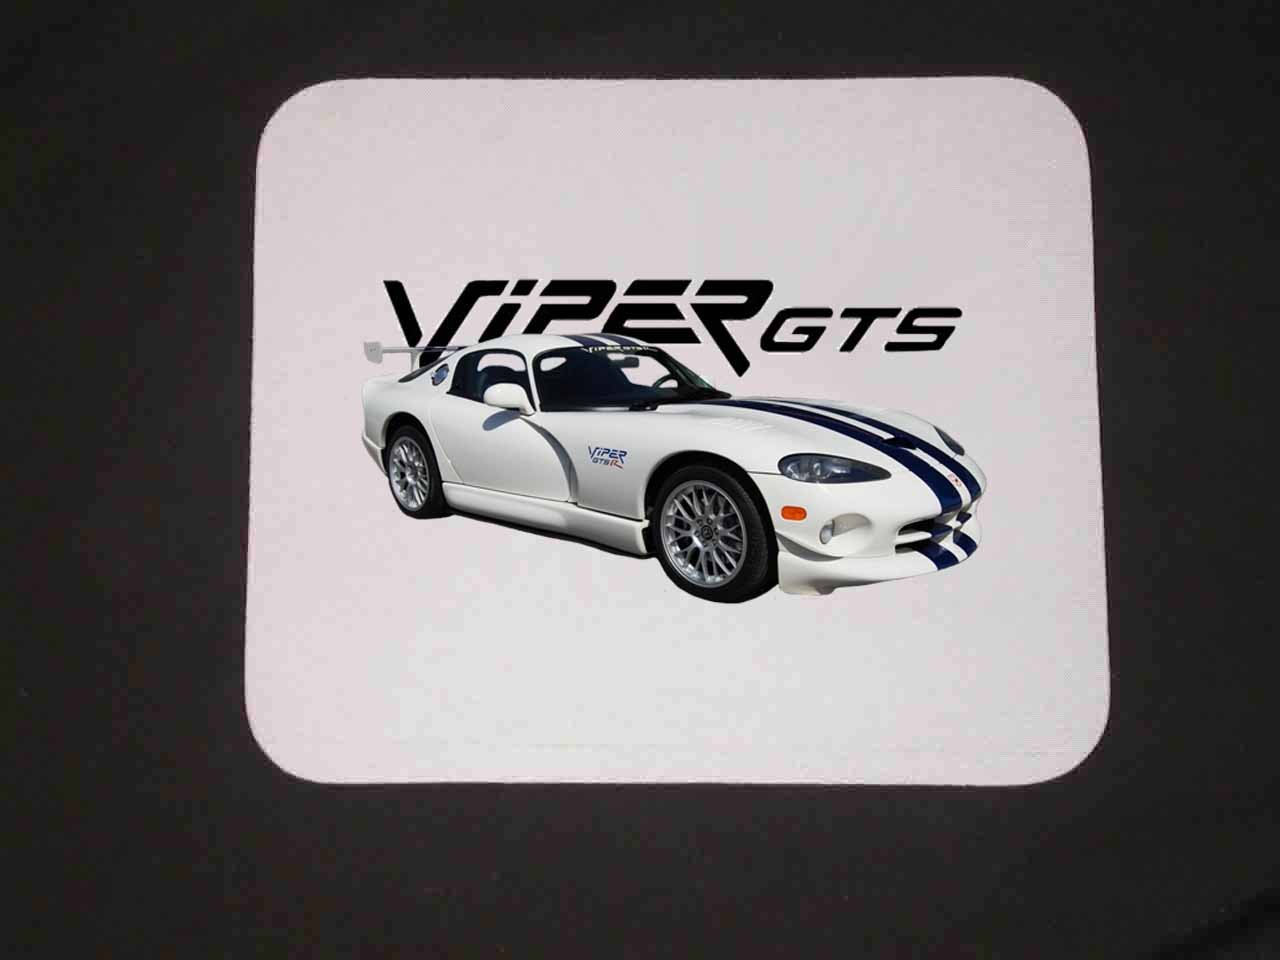 New Dodge Viper GTS Mousepad!!